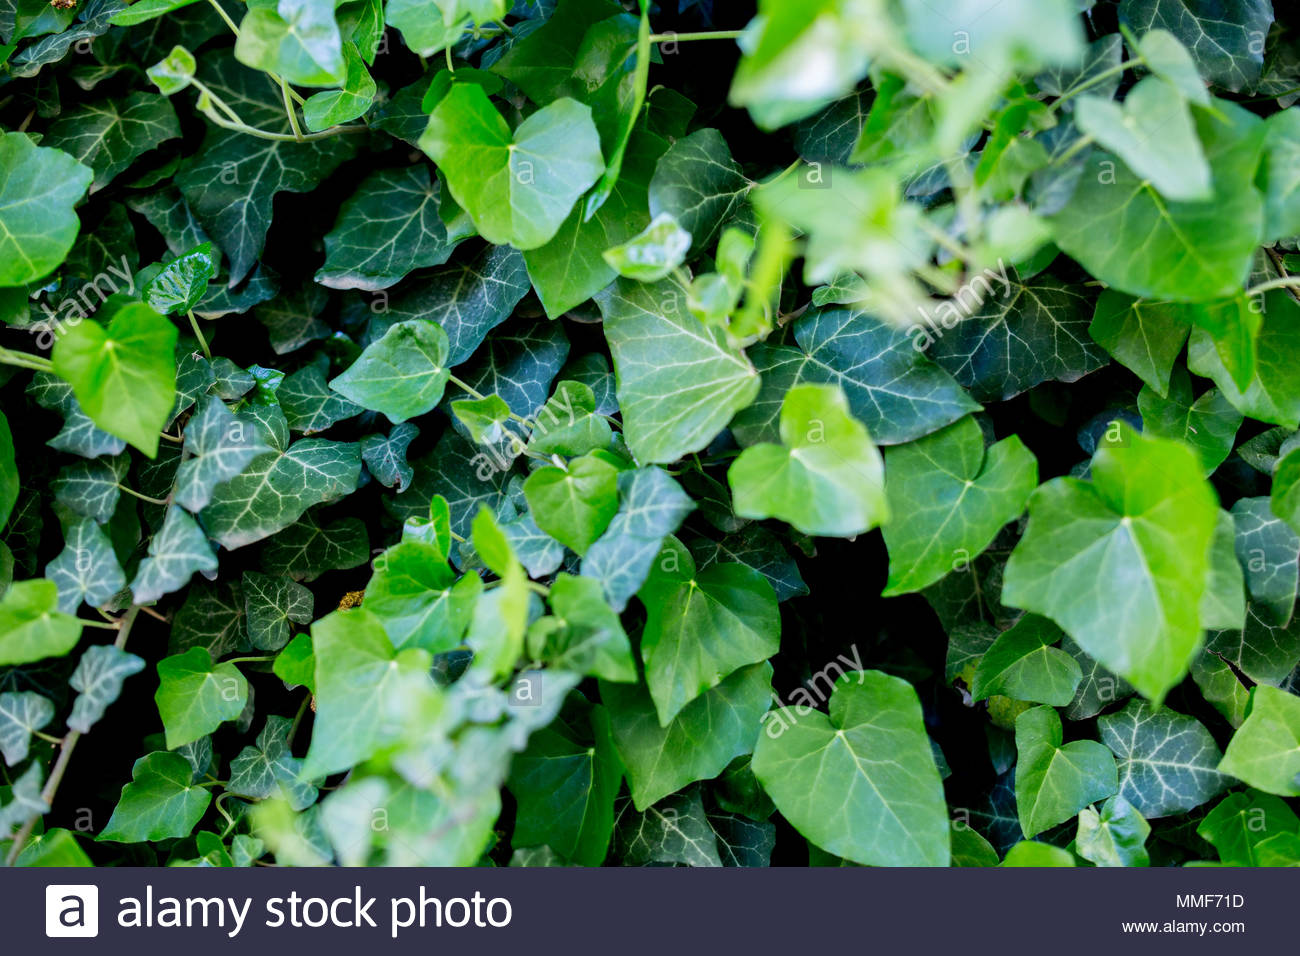 Ivy Wallpaper Background Textures Stock Photo 184731609 Alamy